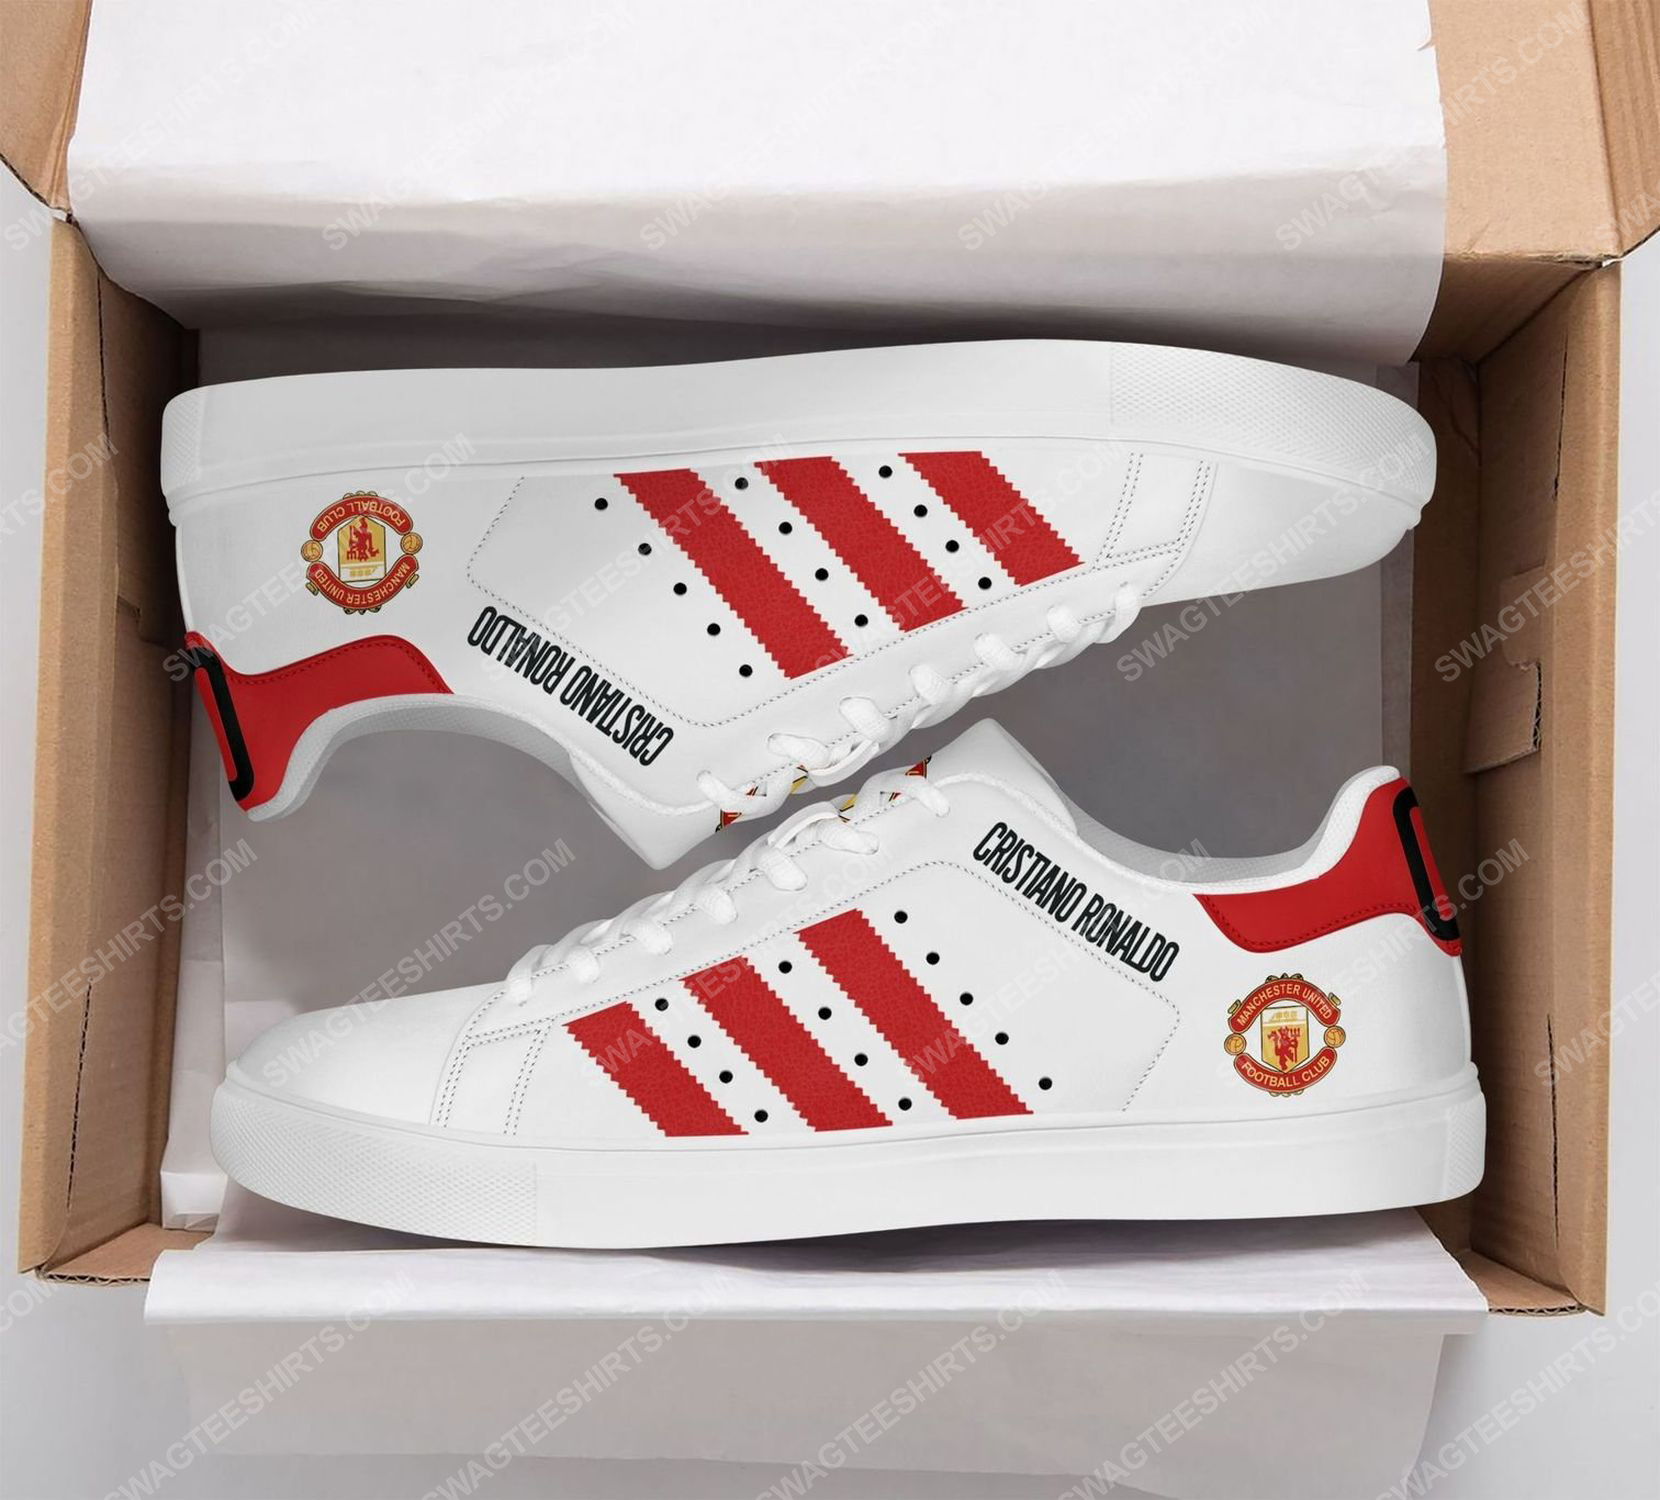 Manchester united cr7 stan smith shoes